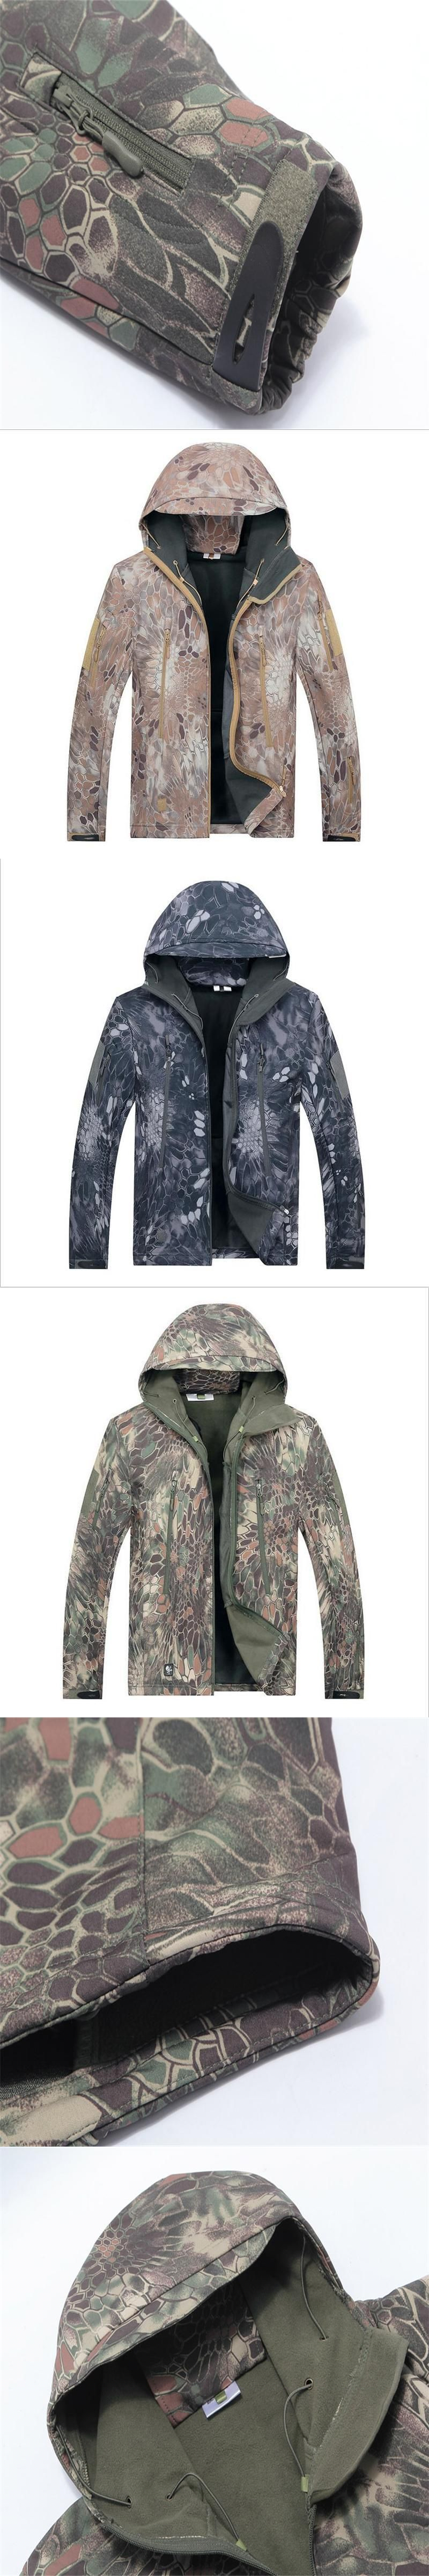 9855db30e32 Army Camouflage Coat Military Jacket Waterproof Windbreaker Raincoat Hunt  Clothes Army TAD Men Outerwear Jackets And